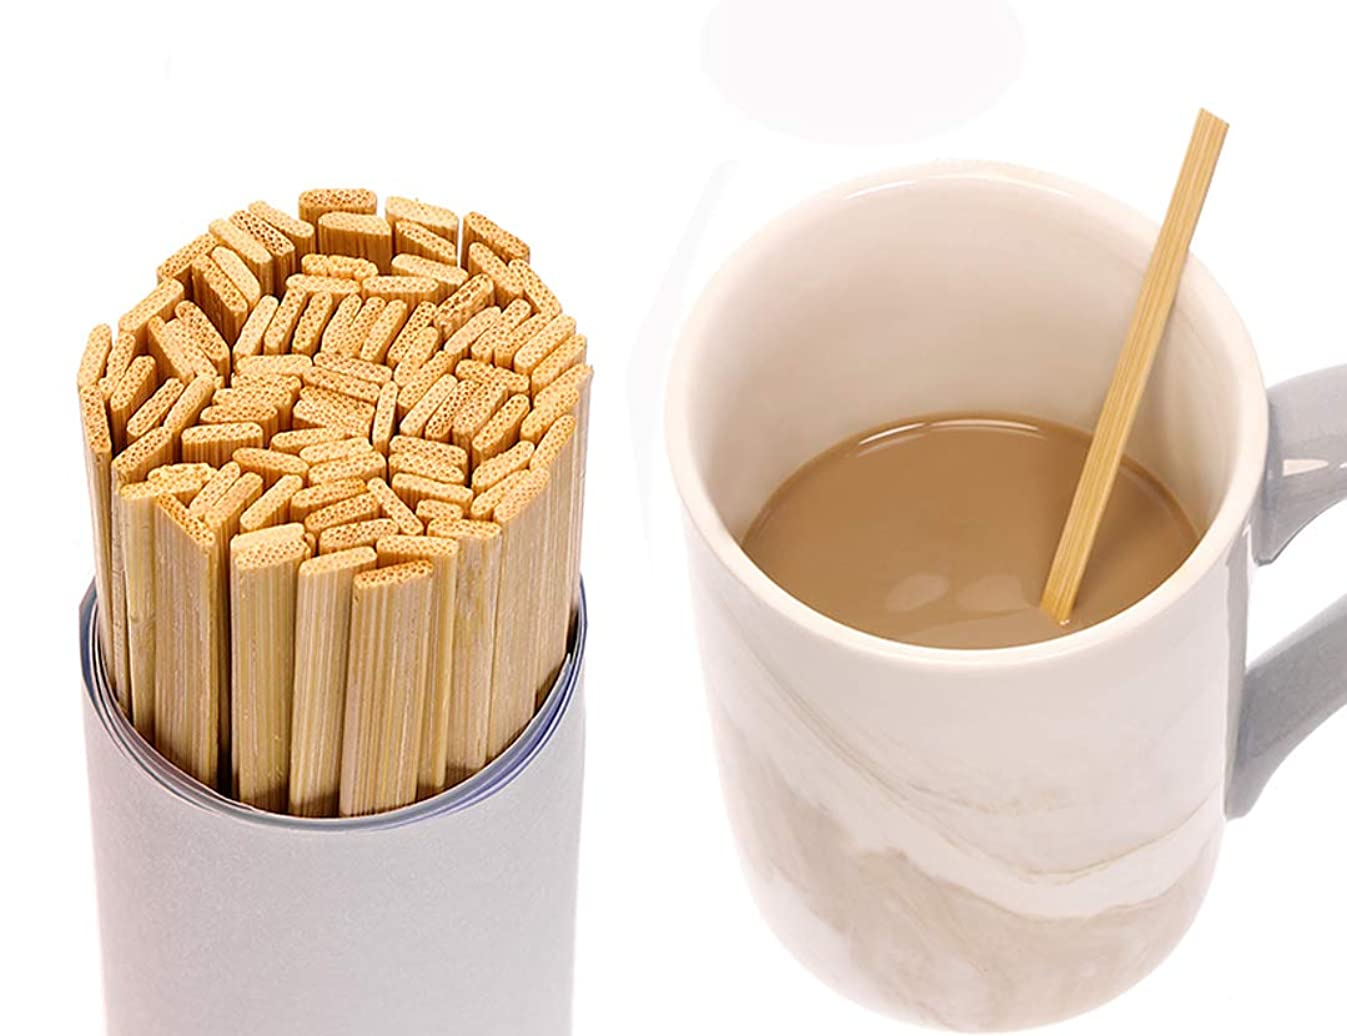 Mini Skater 5.4 Inch Bamboo Coffee Stirrers Eco Friendly Biodegradable Stir Sticks for Tea Hot Cold Beverages (100)